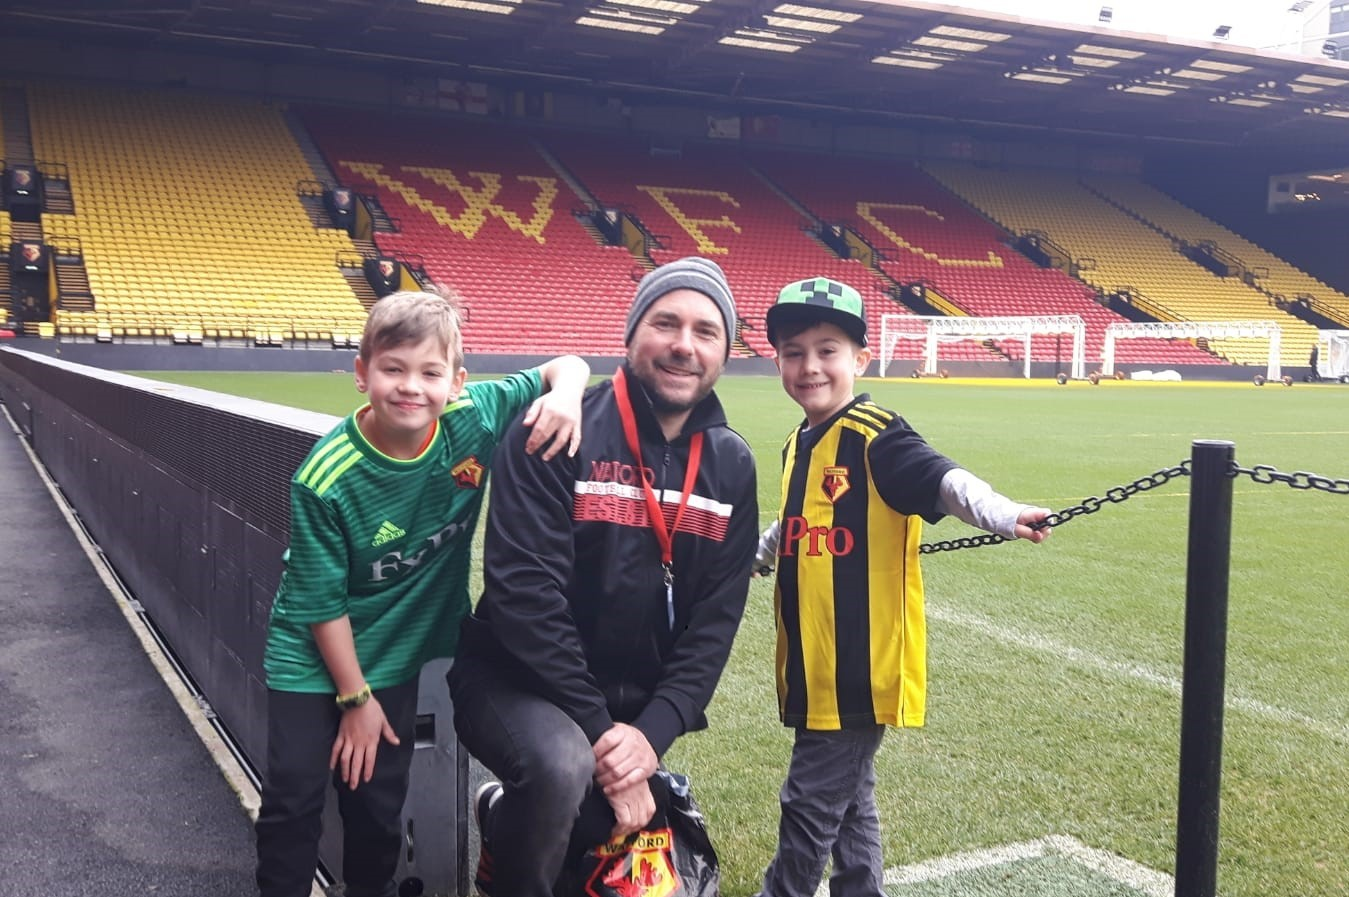 Meet the Hornet who has travelled more than 10,000 miles to be at Wembley